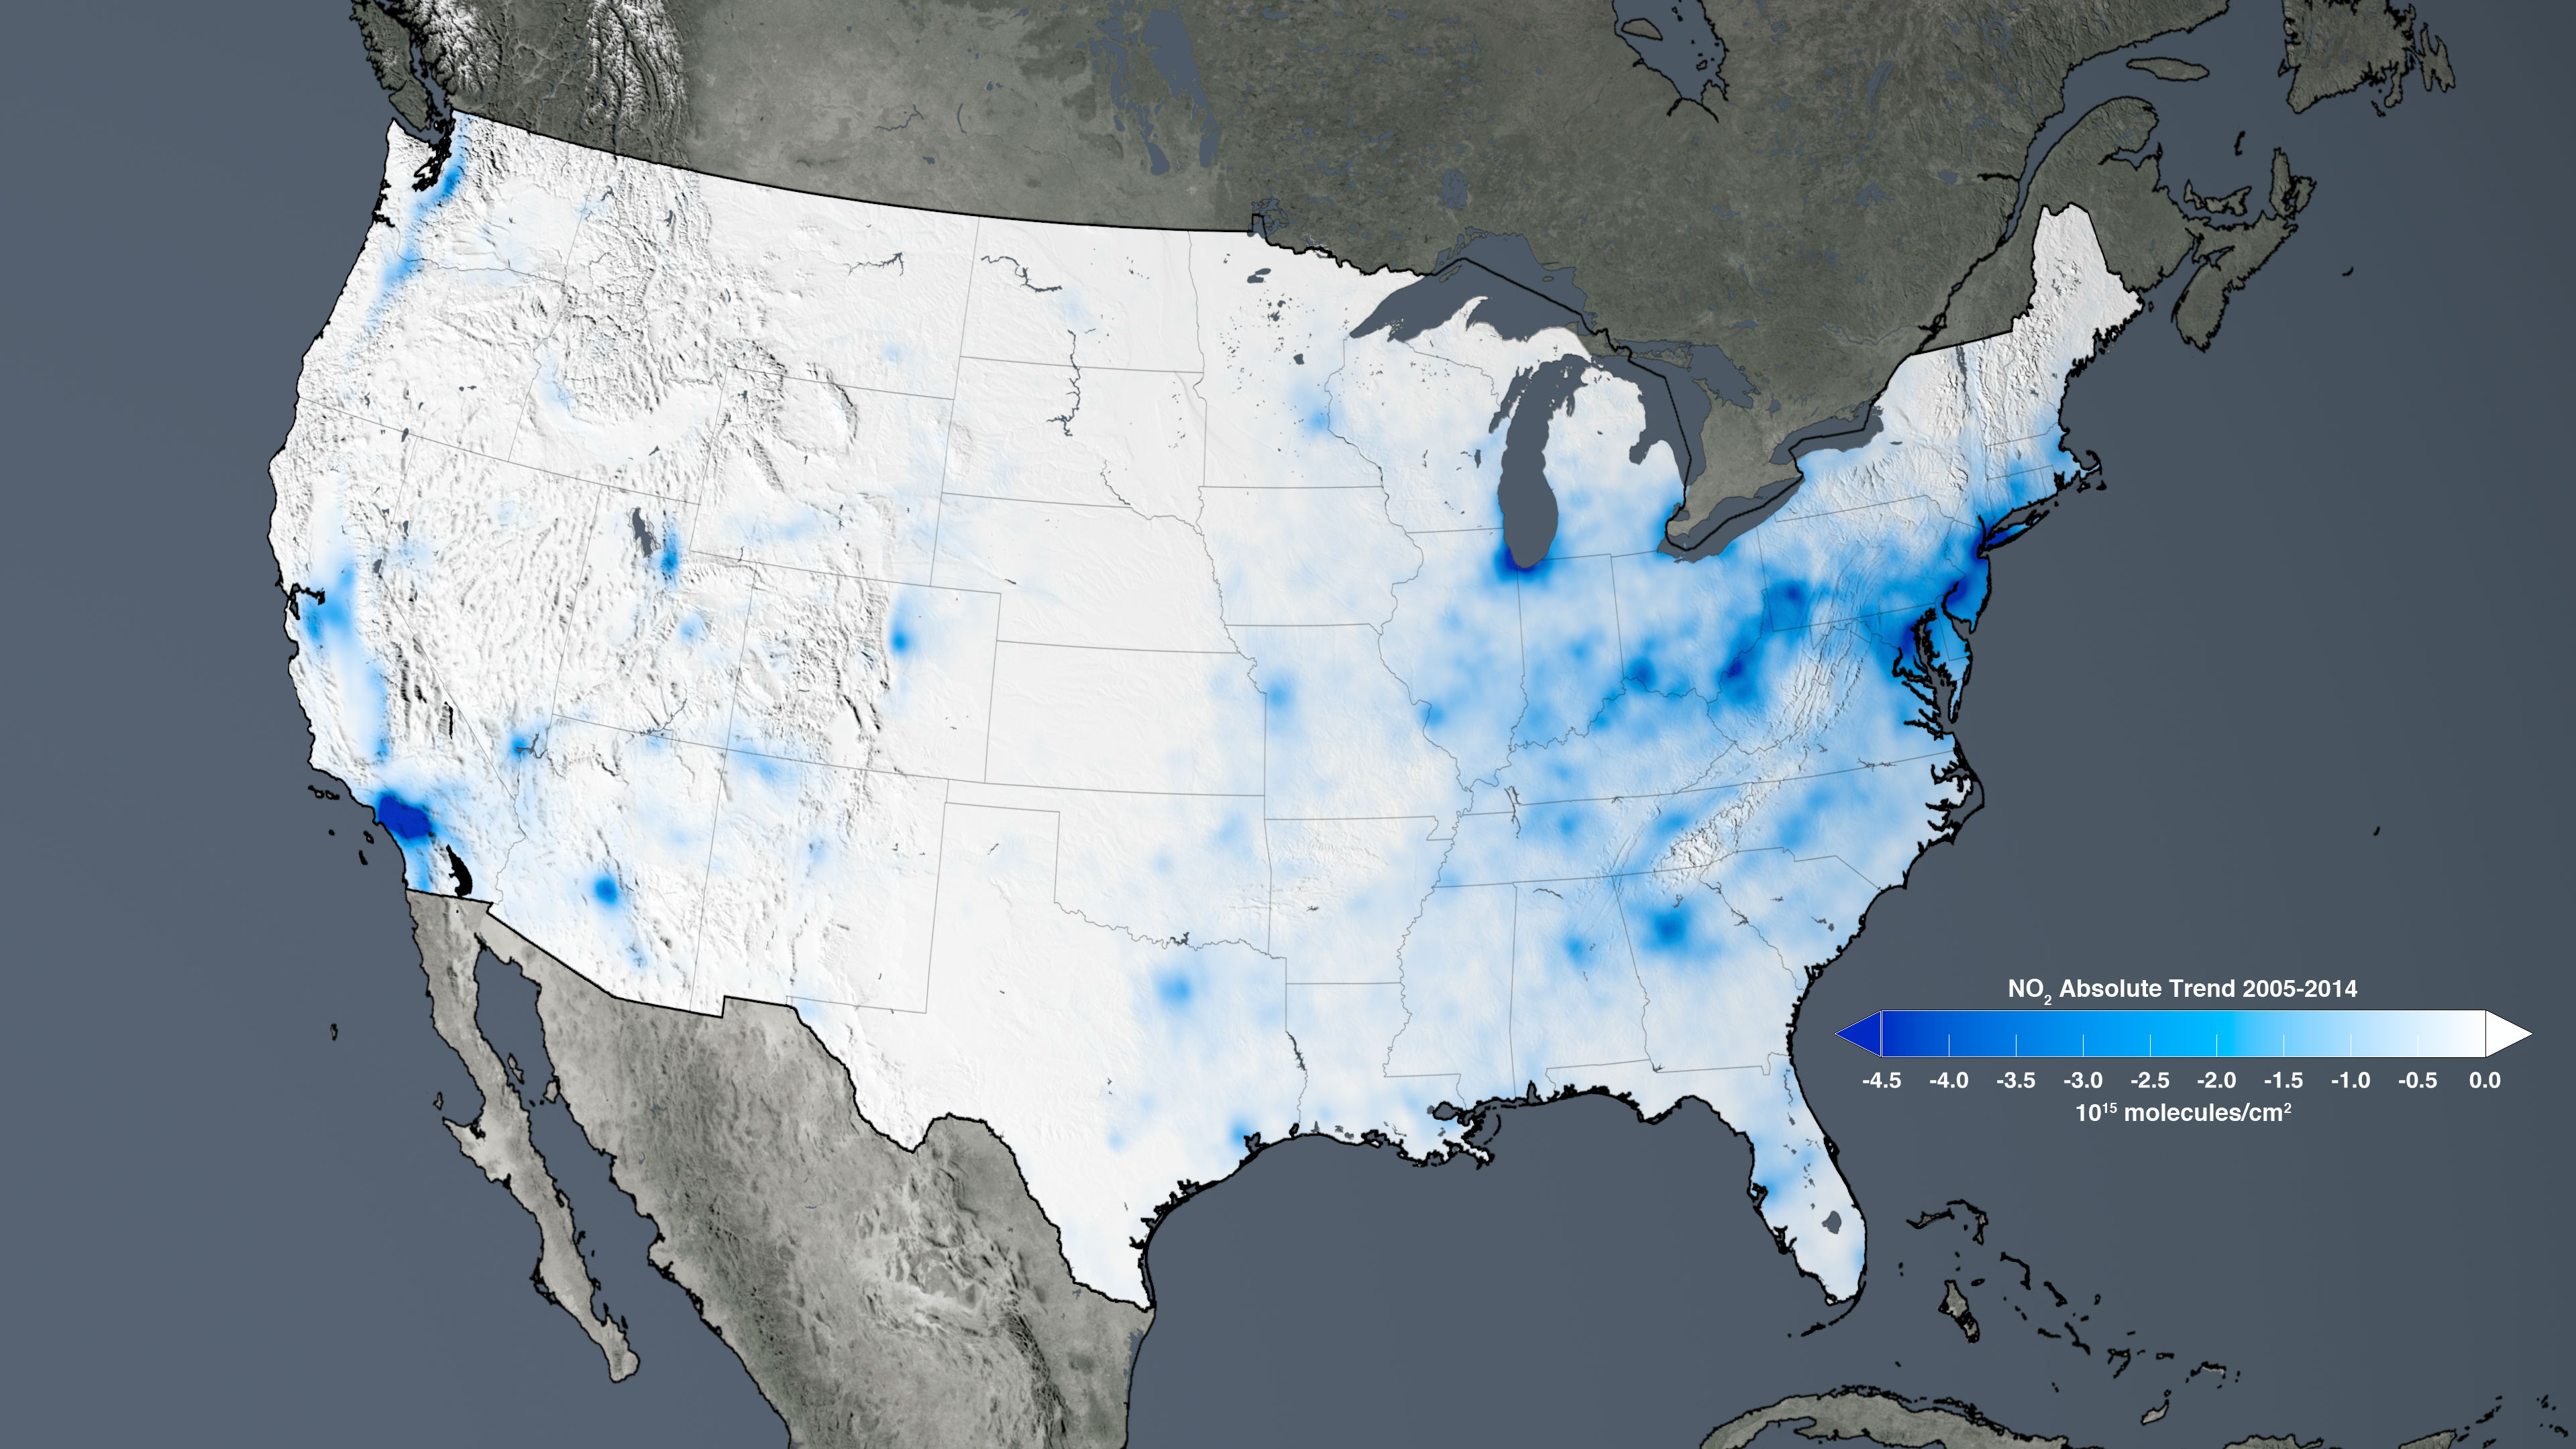 New NASA Satellite Maps Show Human Fingerprint On Global Air - Maps of us over time